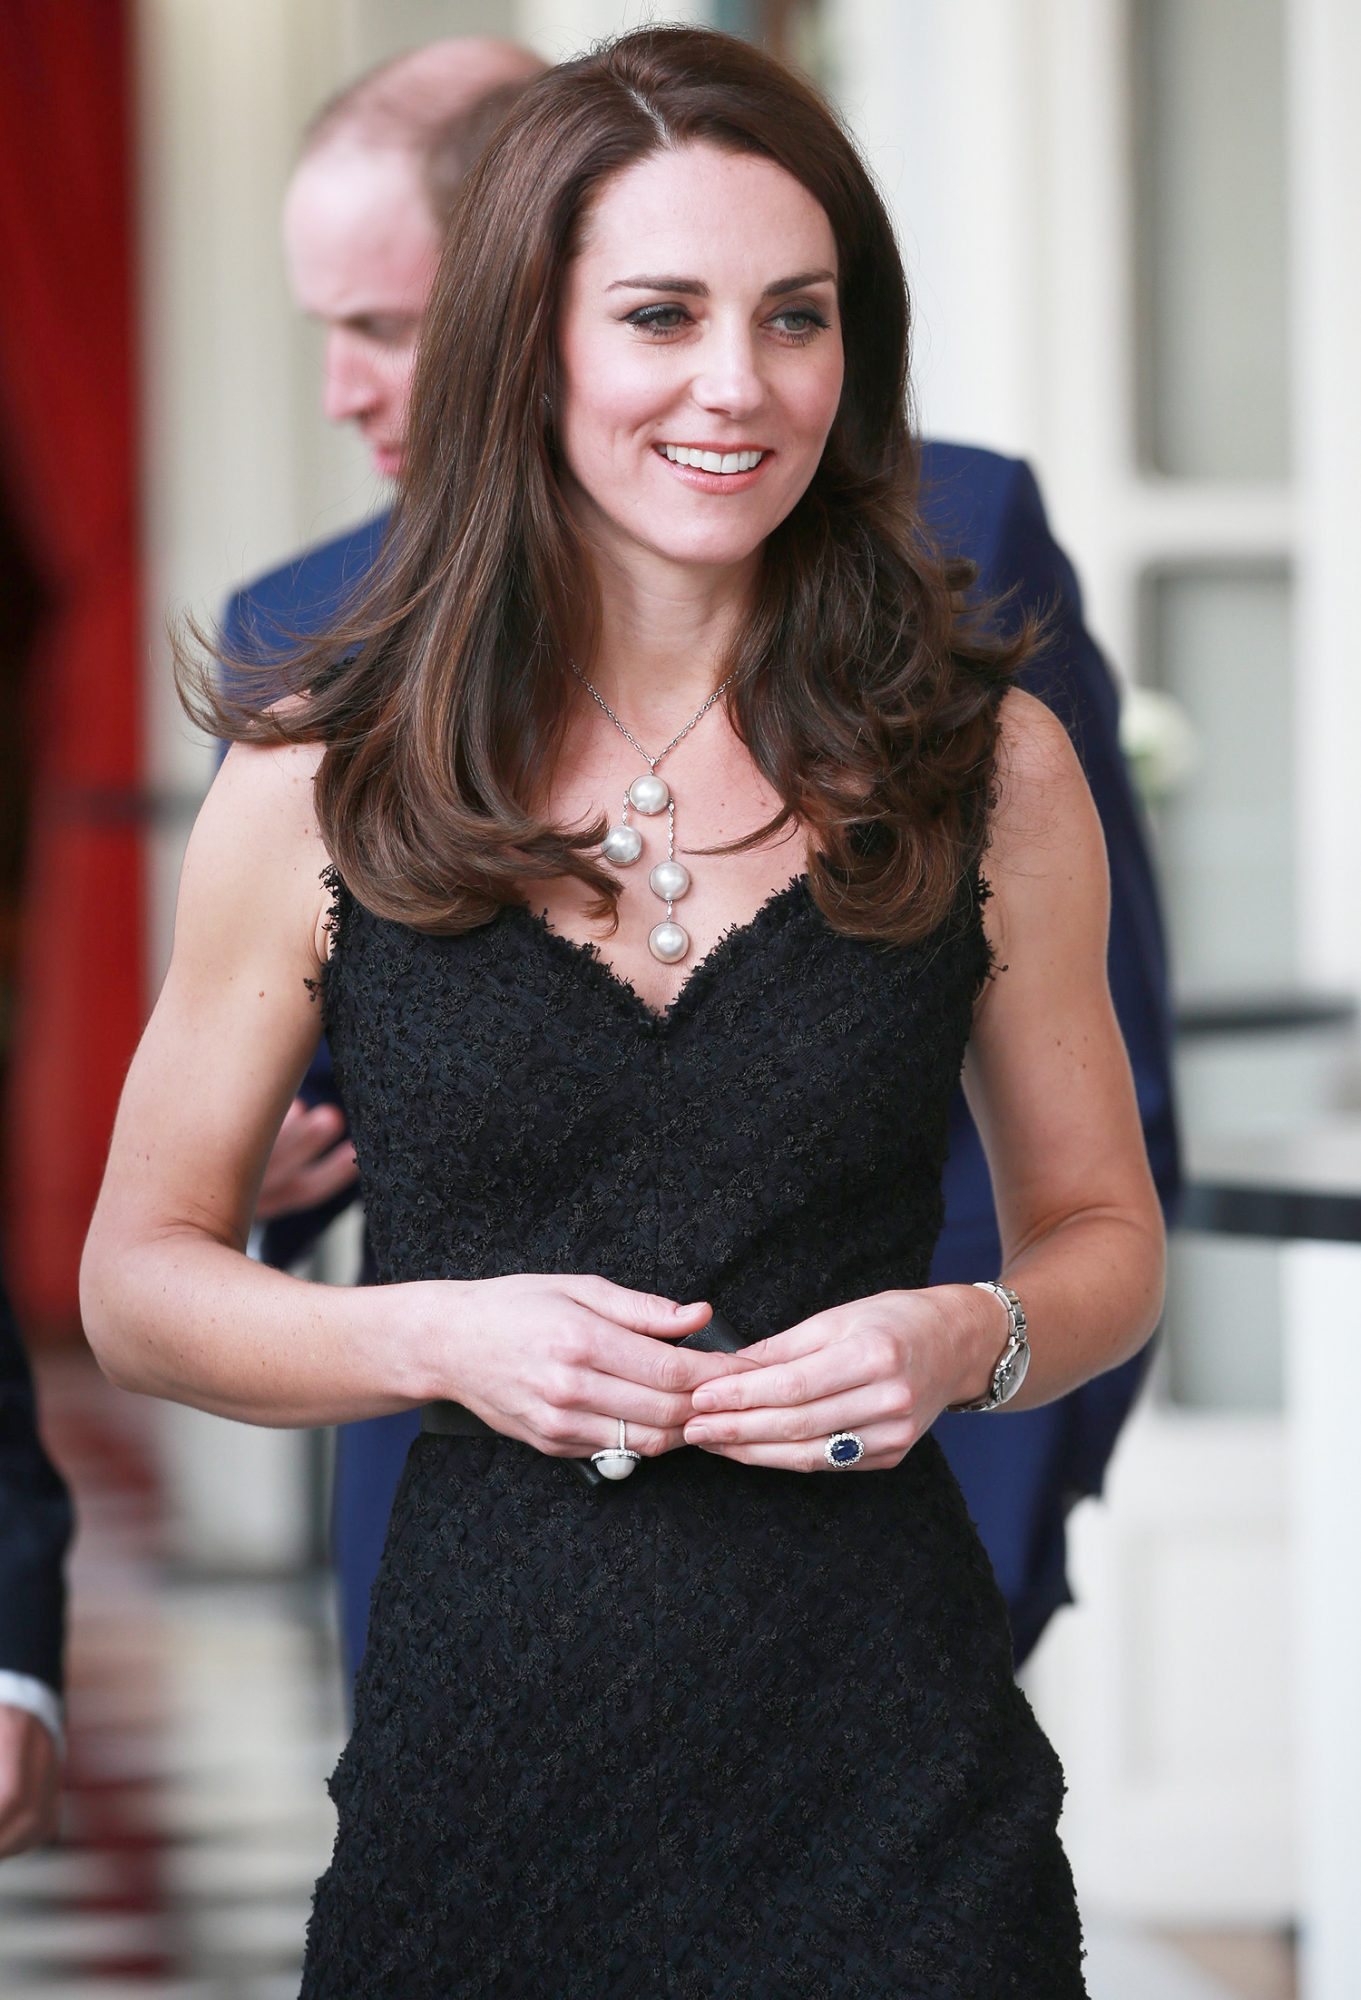 The Duke And Duchess Of Cambridge Visit Paris: Day One